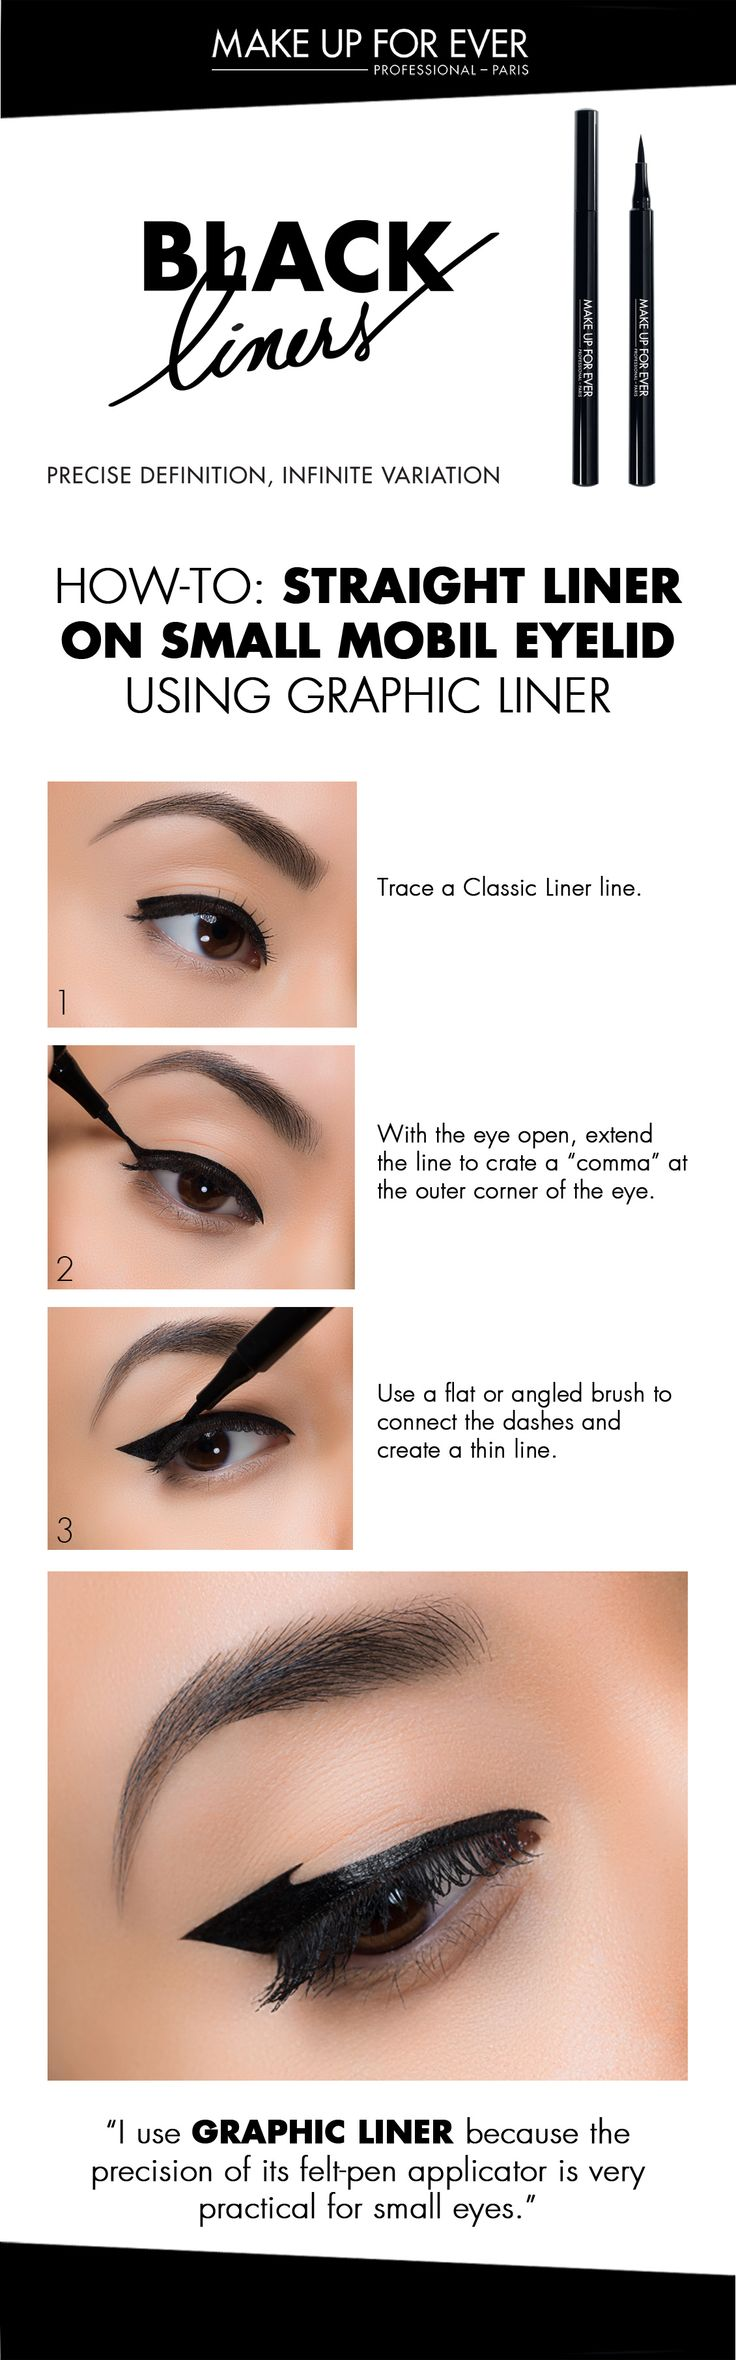 Straight Liner On Small Mobil Eyelid